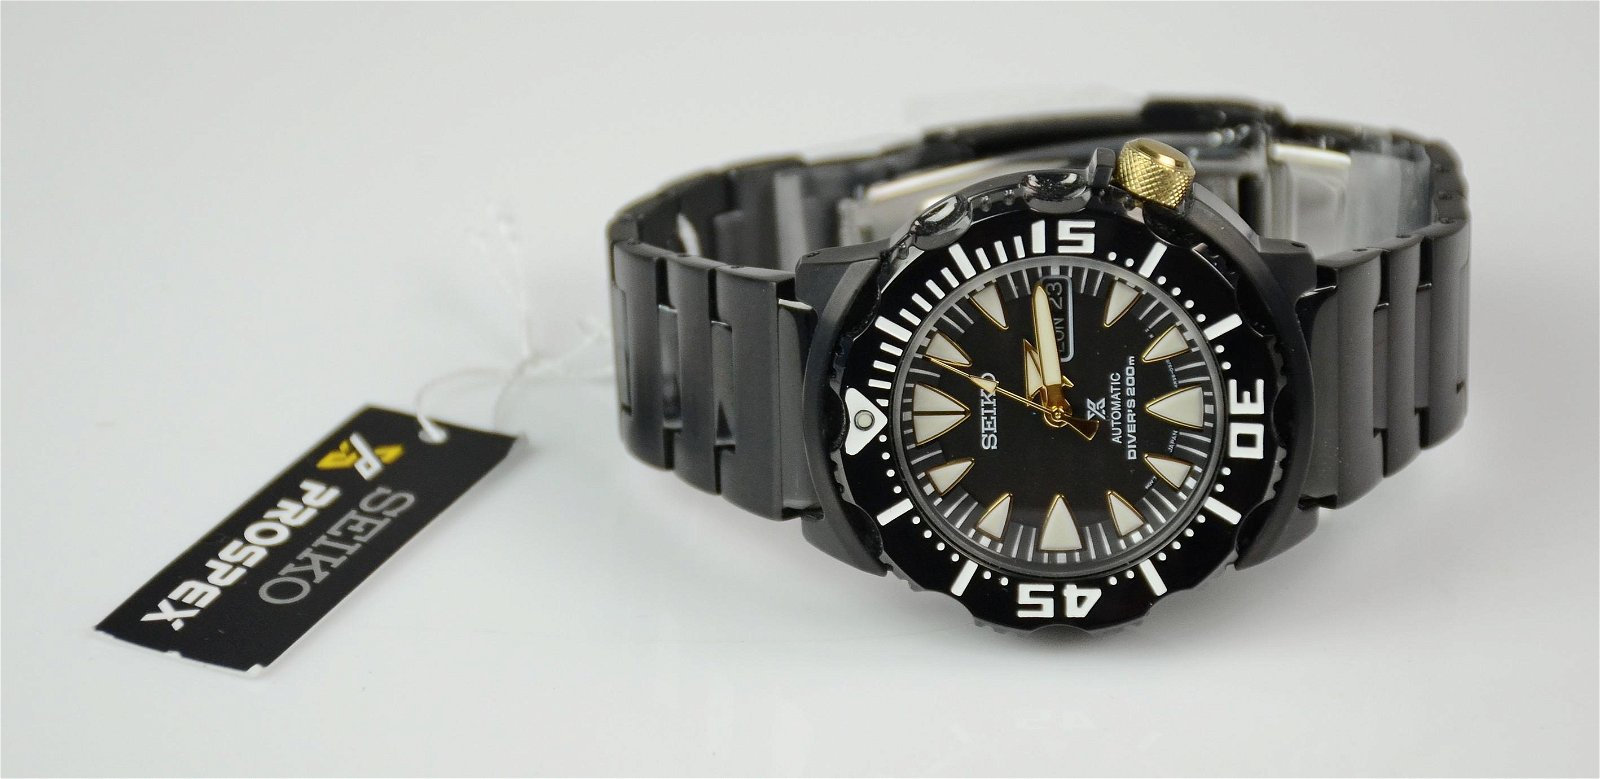 Men's Seiko Black Automatic Diver's 200m watch